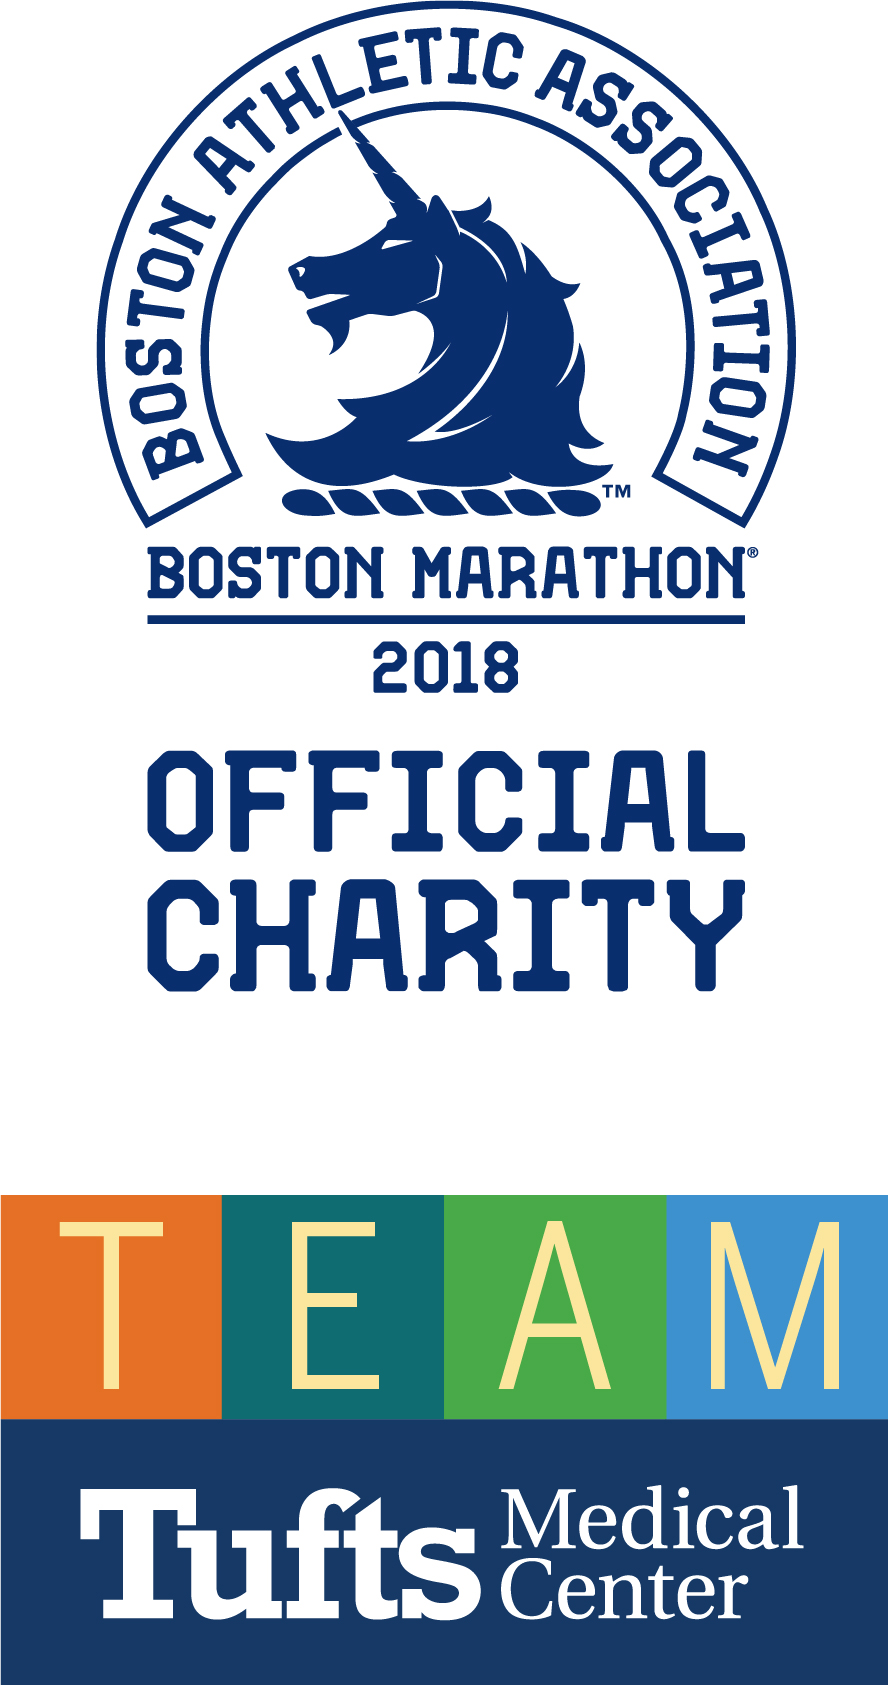 2018 Boston Marathon Official Charity